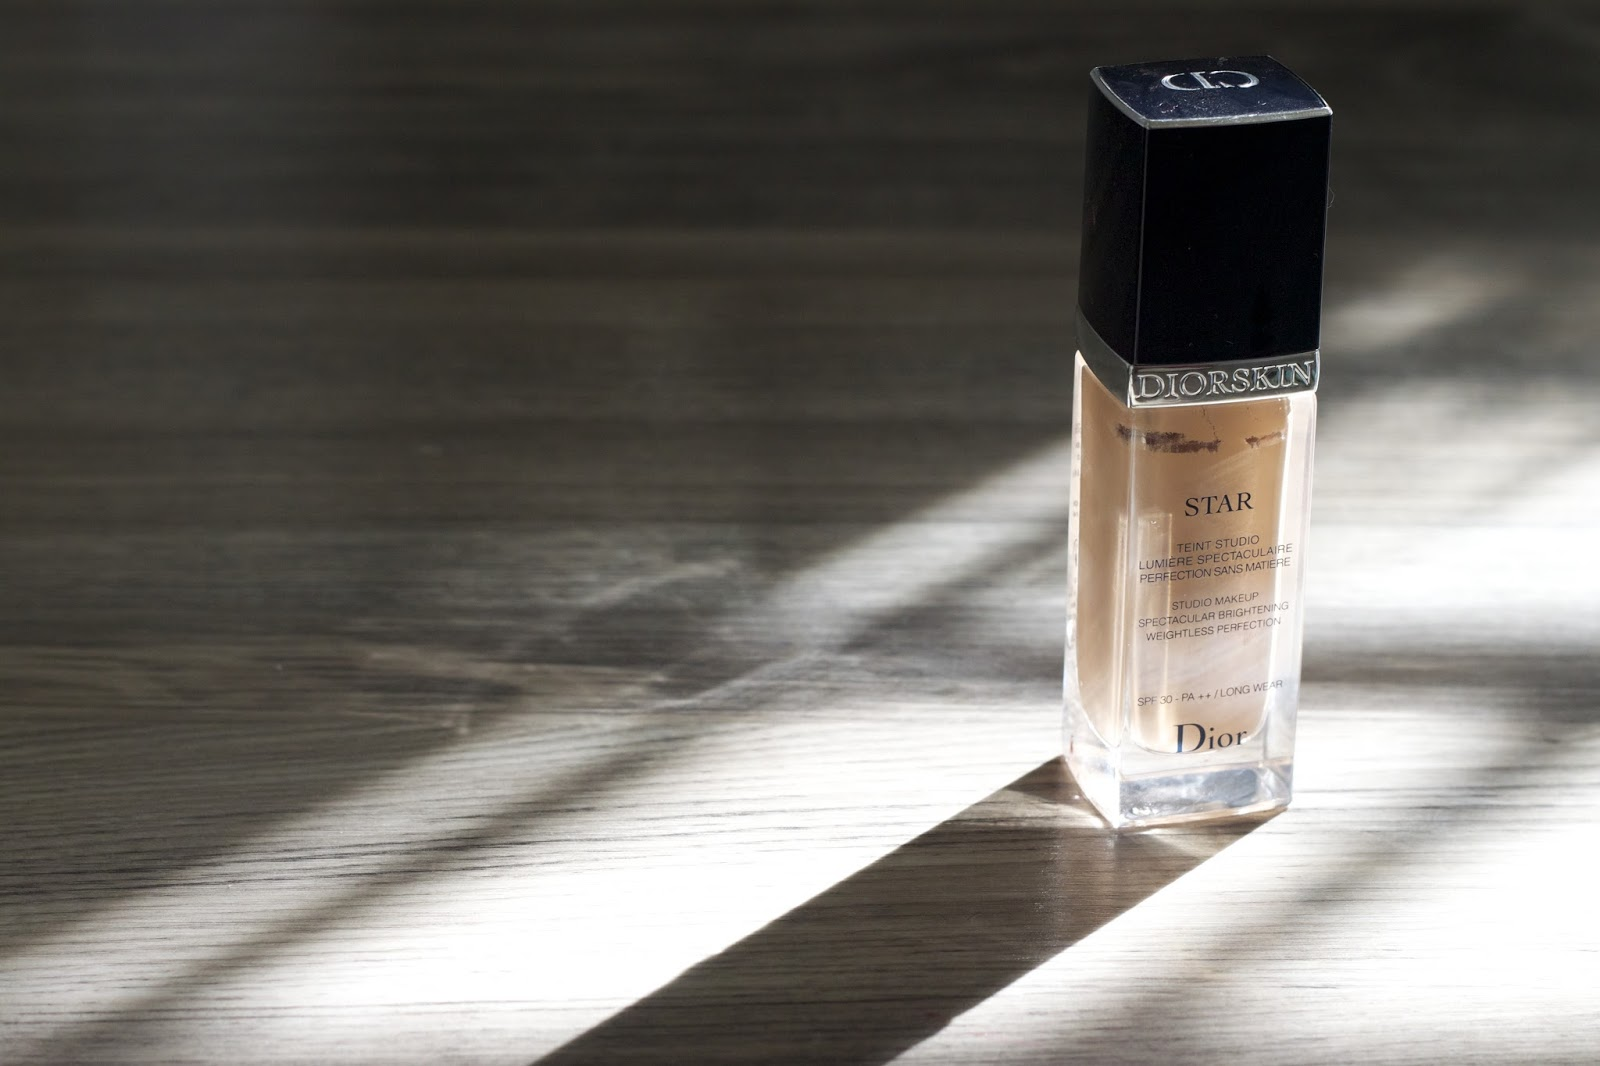 9c2b11e91 Dior skin star foundation, I apply it easily with my fingers, it has a new  innovation which is reflecting the lights on your skin, making your skin so  ...